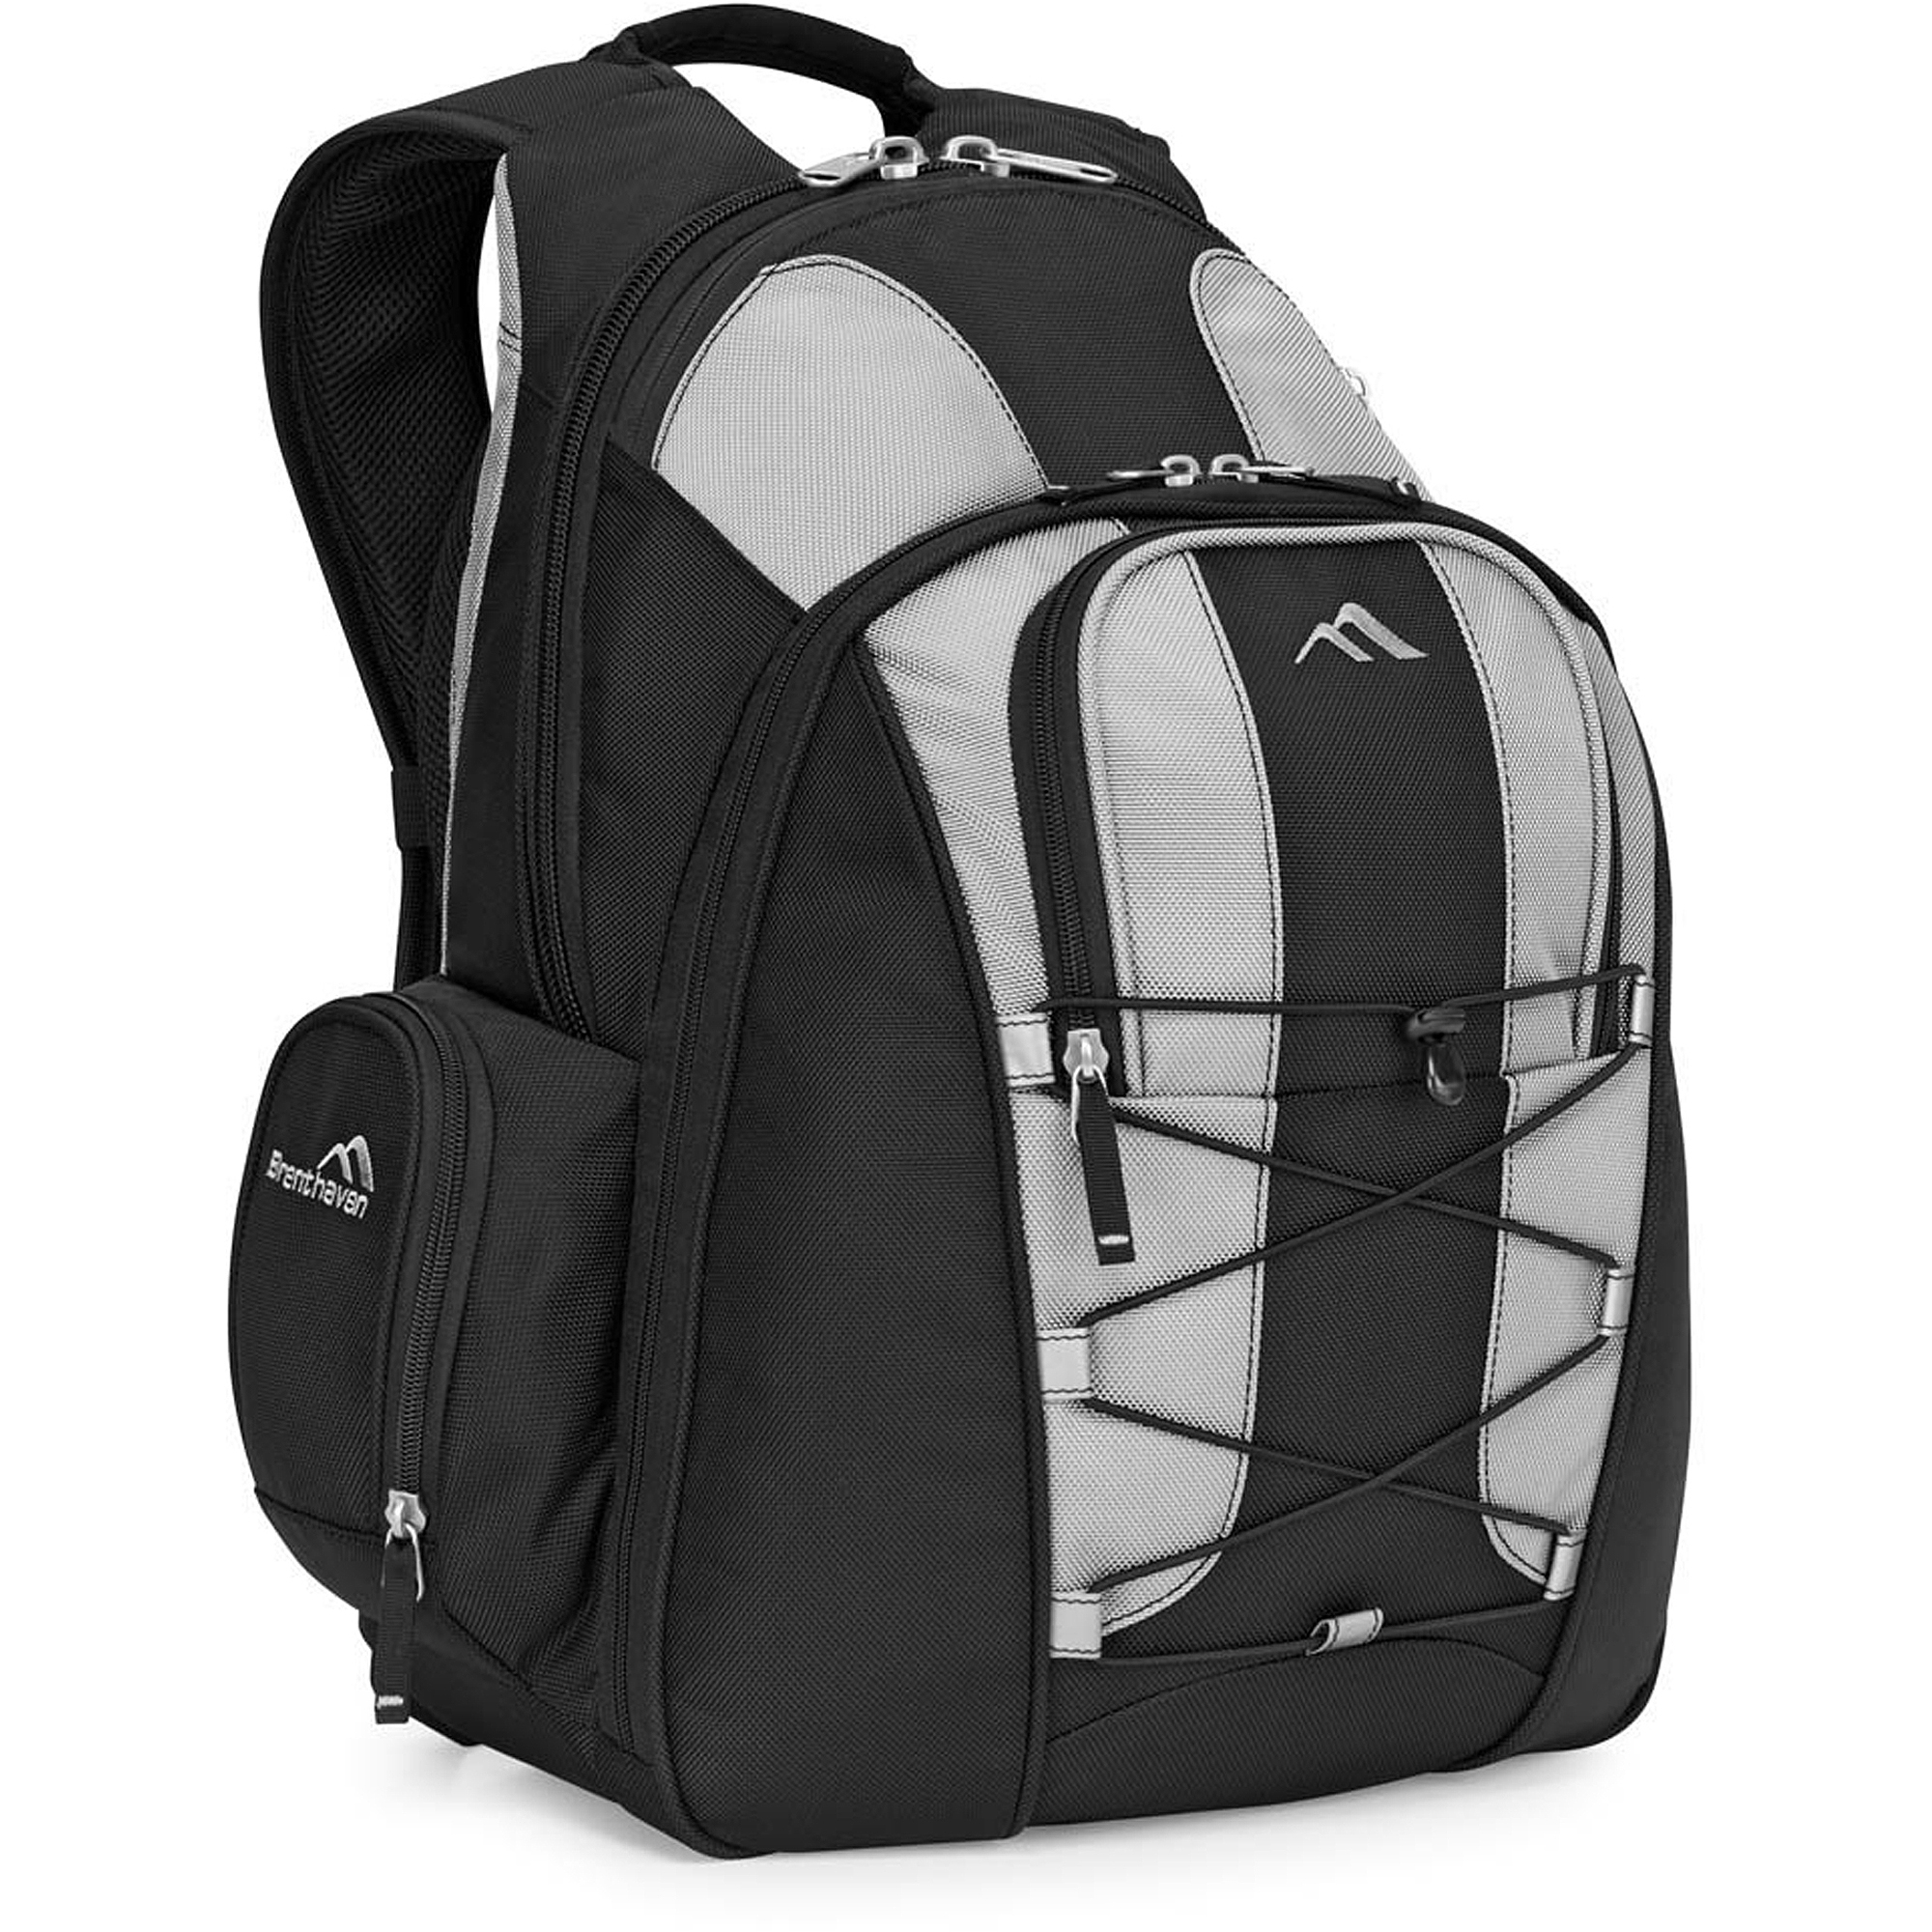 Brenthaven 2071 Expandable Trek Backpack, Titanium